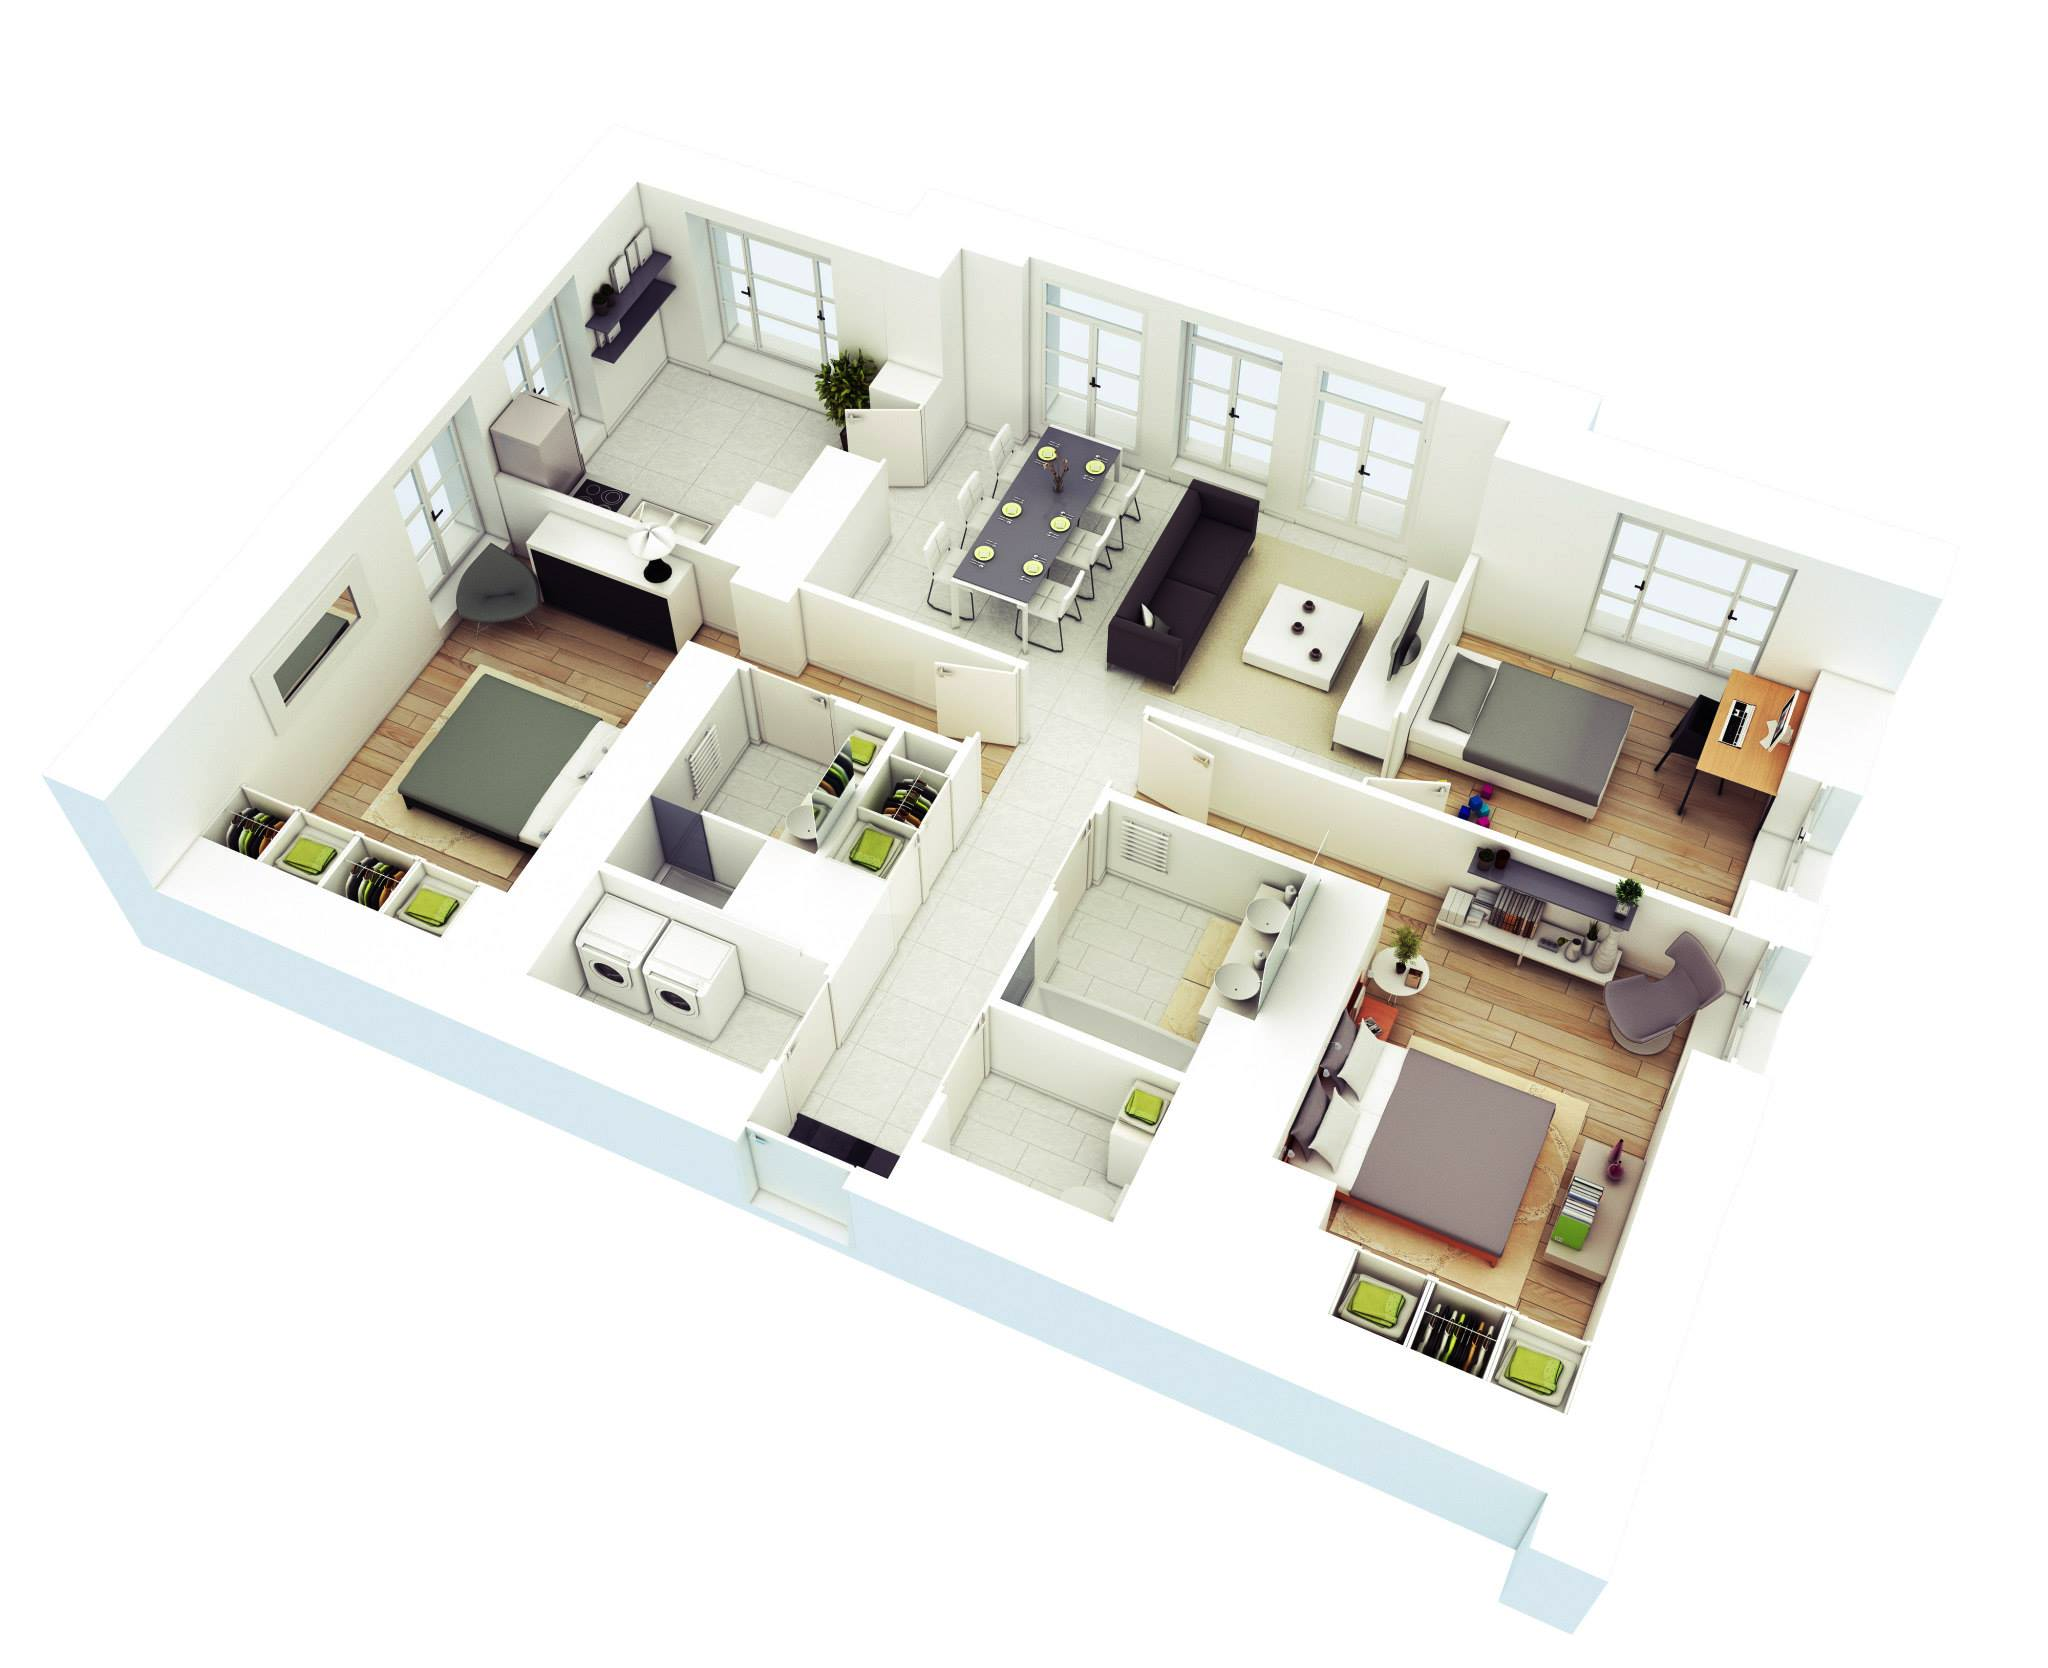 25 More 3 Bedroom 3d Floor Plans Three Bedroom House Plan Bedroom House Plans Bedroom Floor Plans